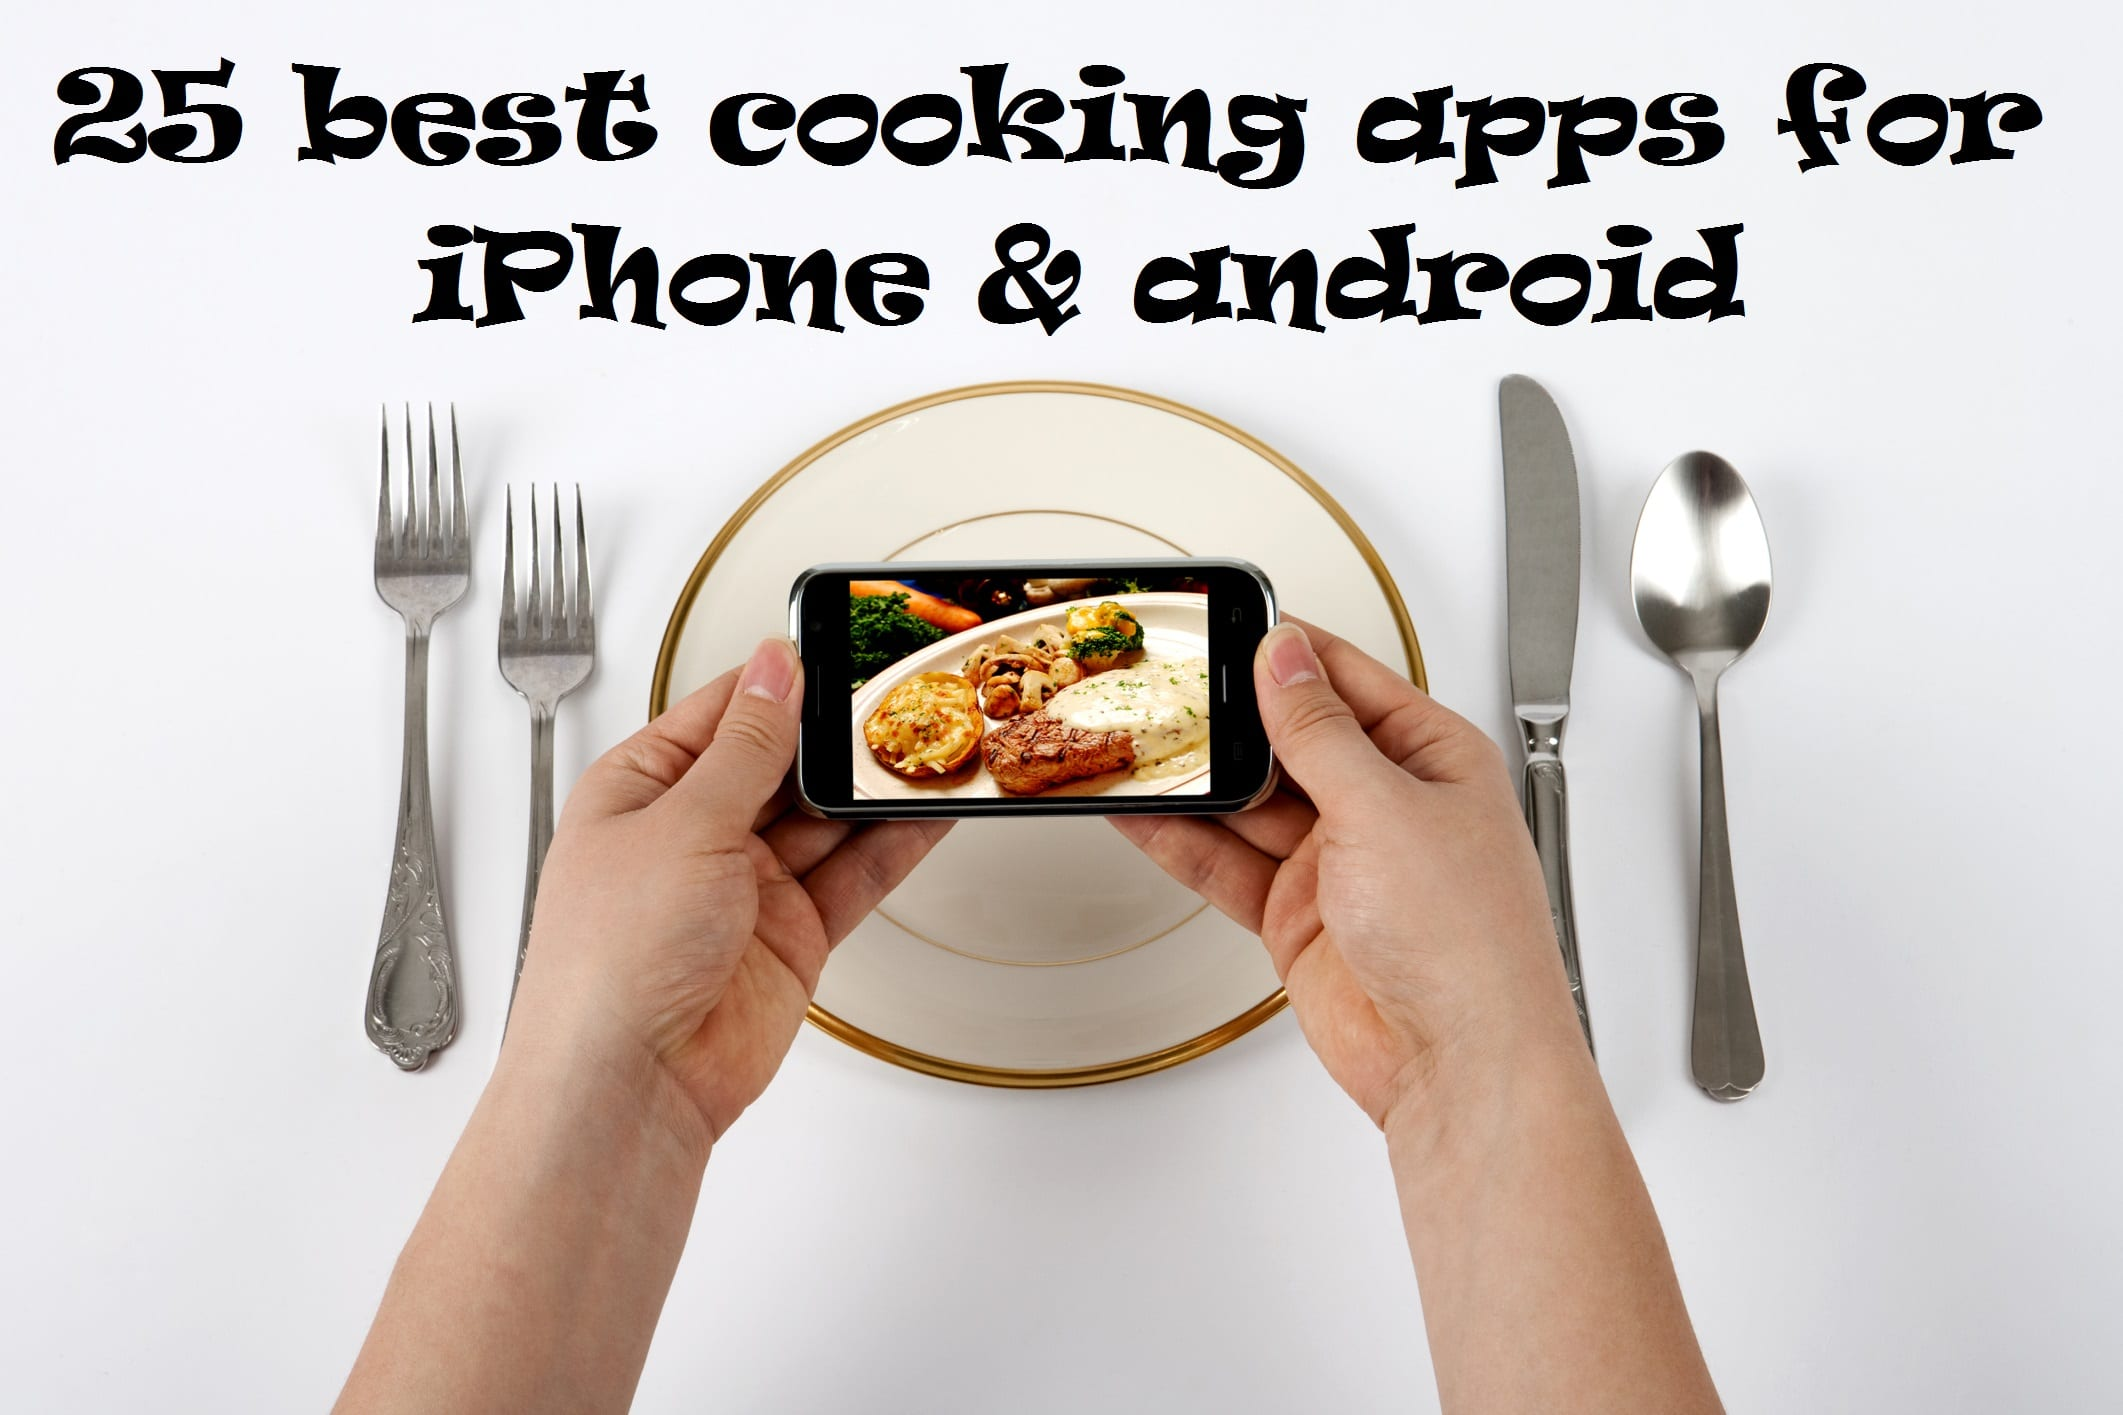 25 best cooking apps for iphone android free apps for android 25 best cooking apps for iphone android free apps for android ios windows and mac forumfinder Images